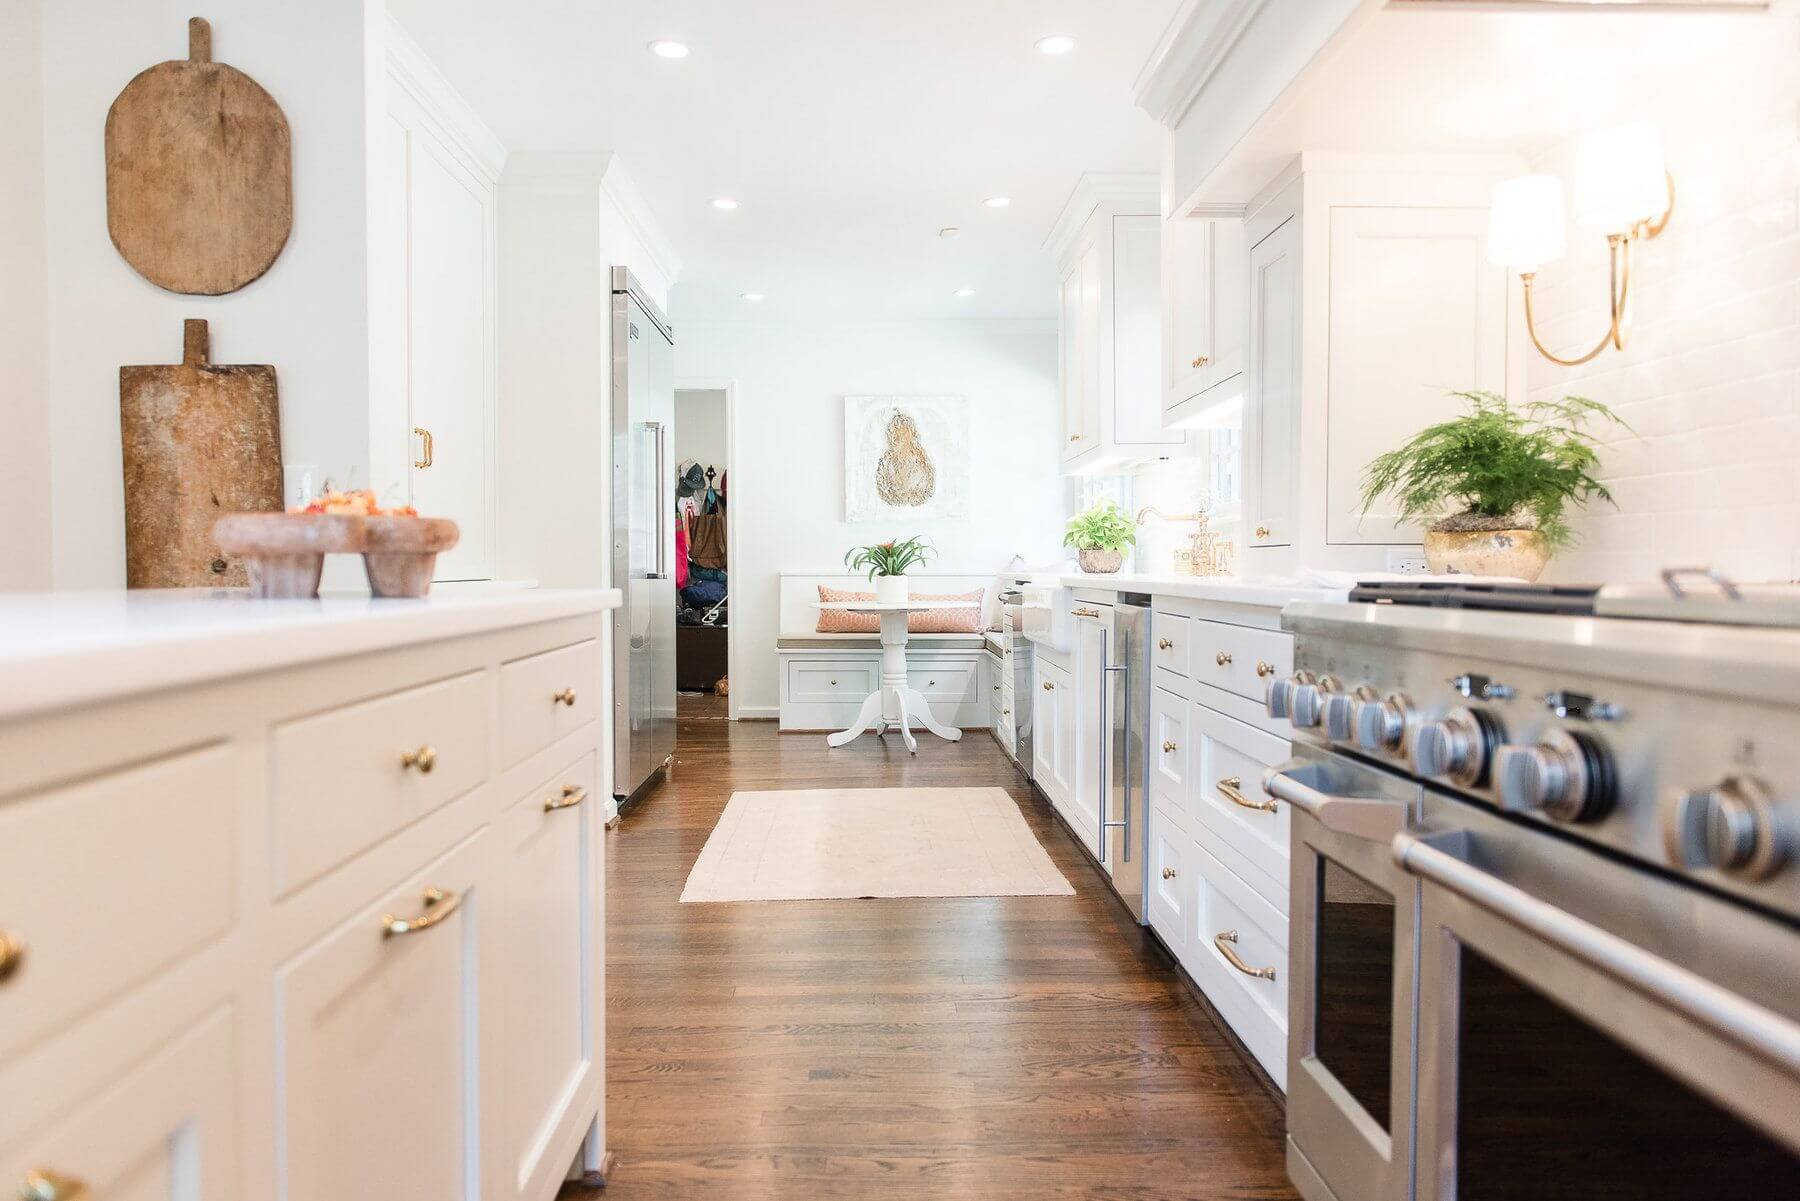 In her new kitchen, Ashley can be with her kids as she cooks, while they do homework at the banquette or hand out at the kitchen island.